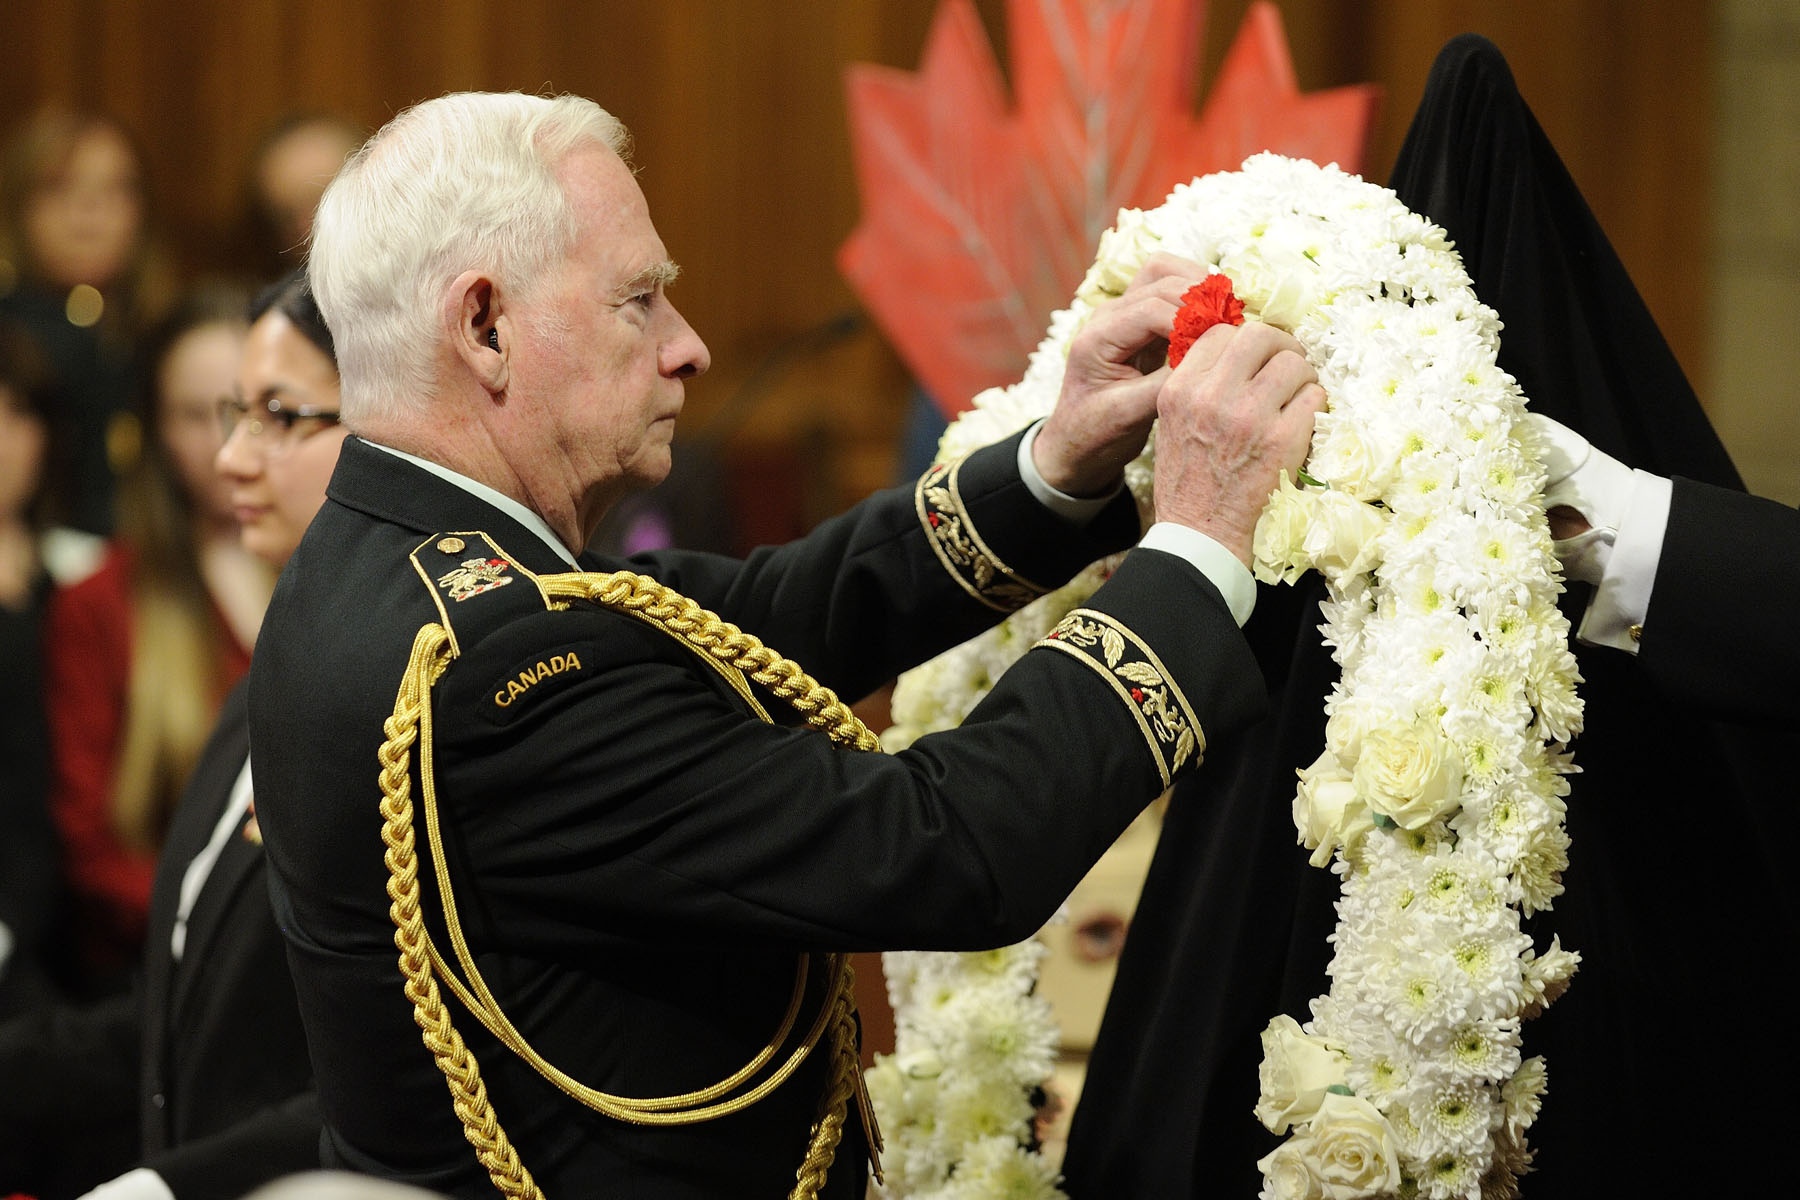 The Governor General and Commander-in-Chief of Canada added a red flower to a wreath, representing one of the twelve years of the mission in Afghanistan.